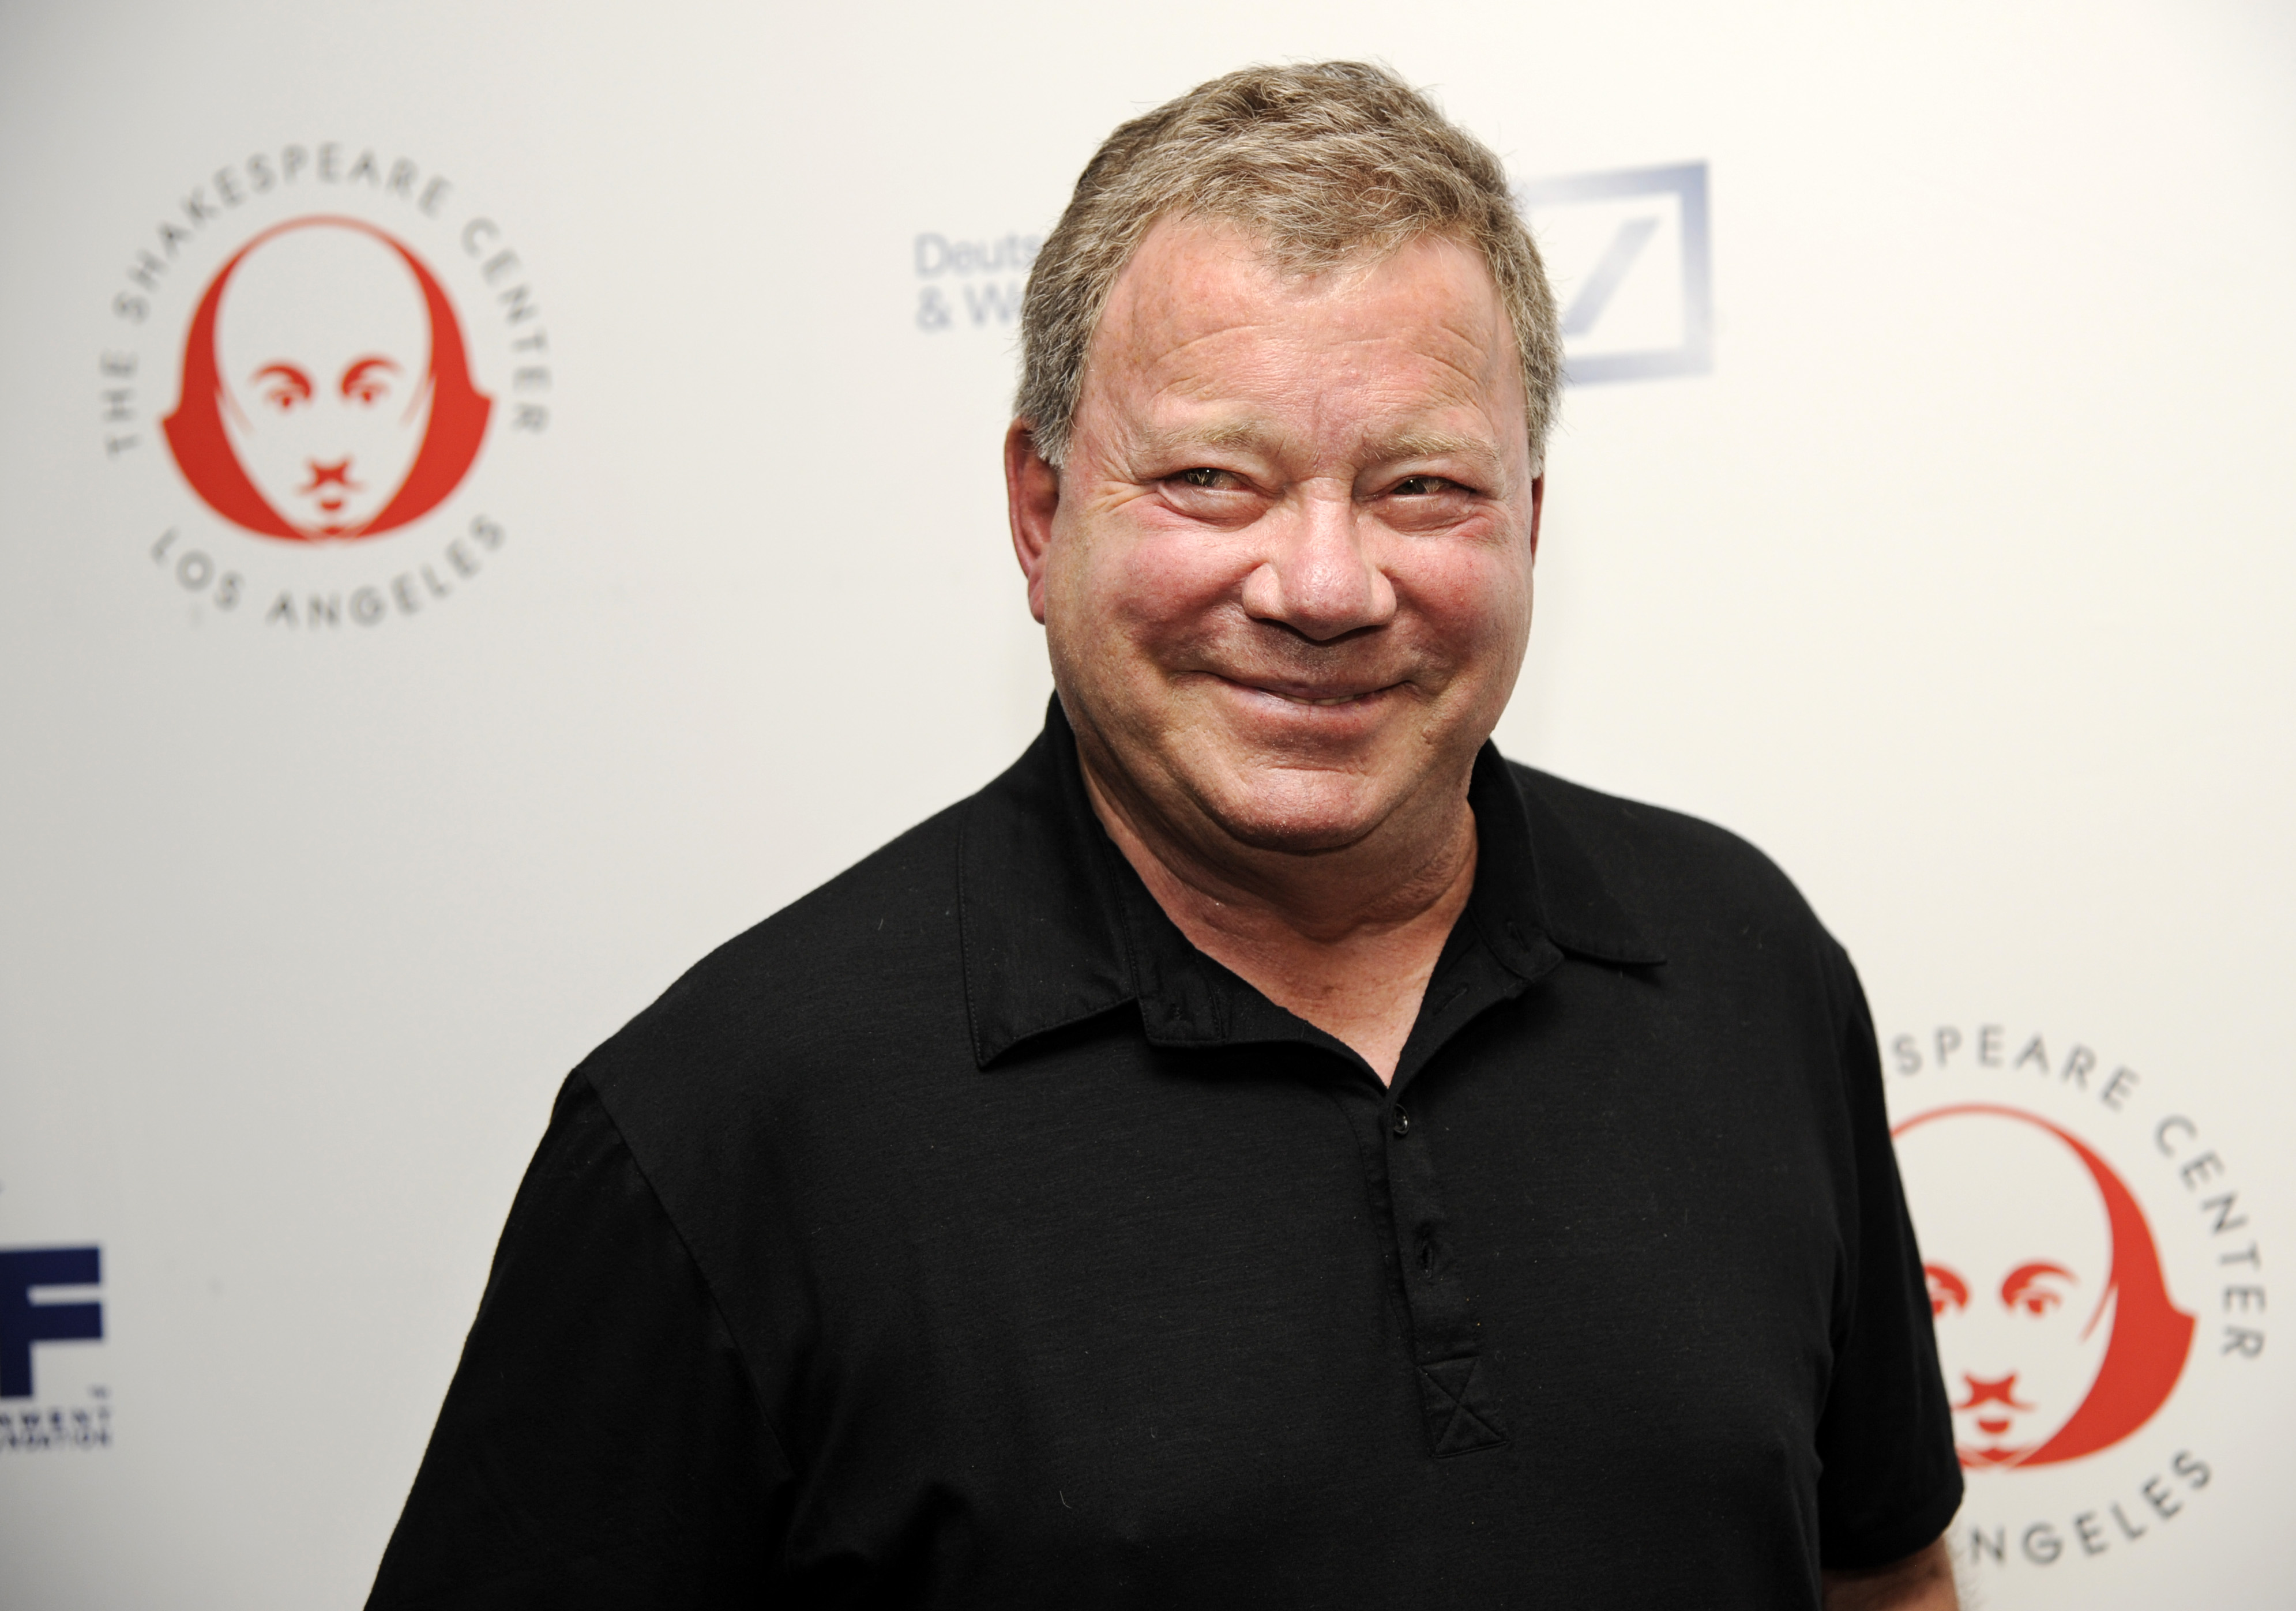 Cast member William Shatner arrives for the 24th annual Simply Shakespeare benefit reading of As You Like It in Los Angeles on Sept. 22, 2014